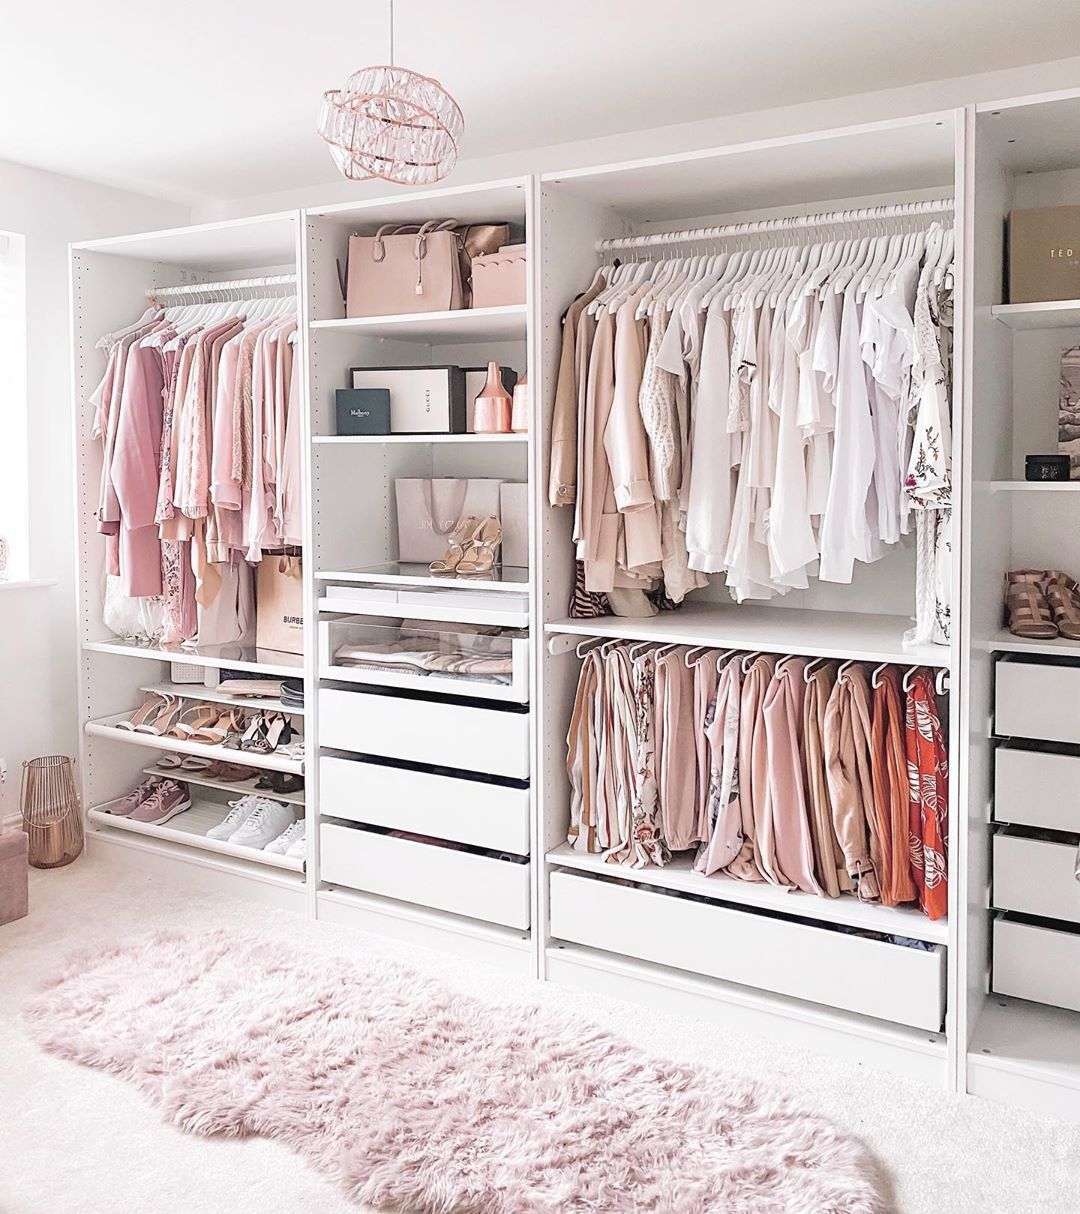 CLEANING OUT YOUR CLOSET - READ MORE